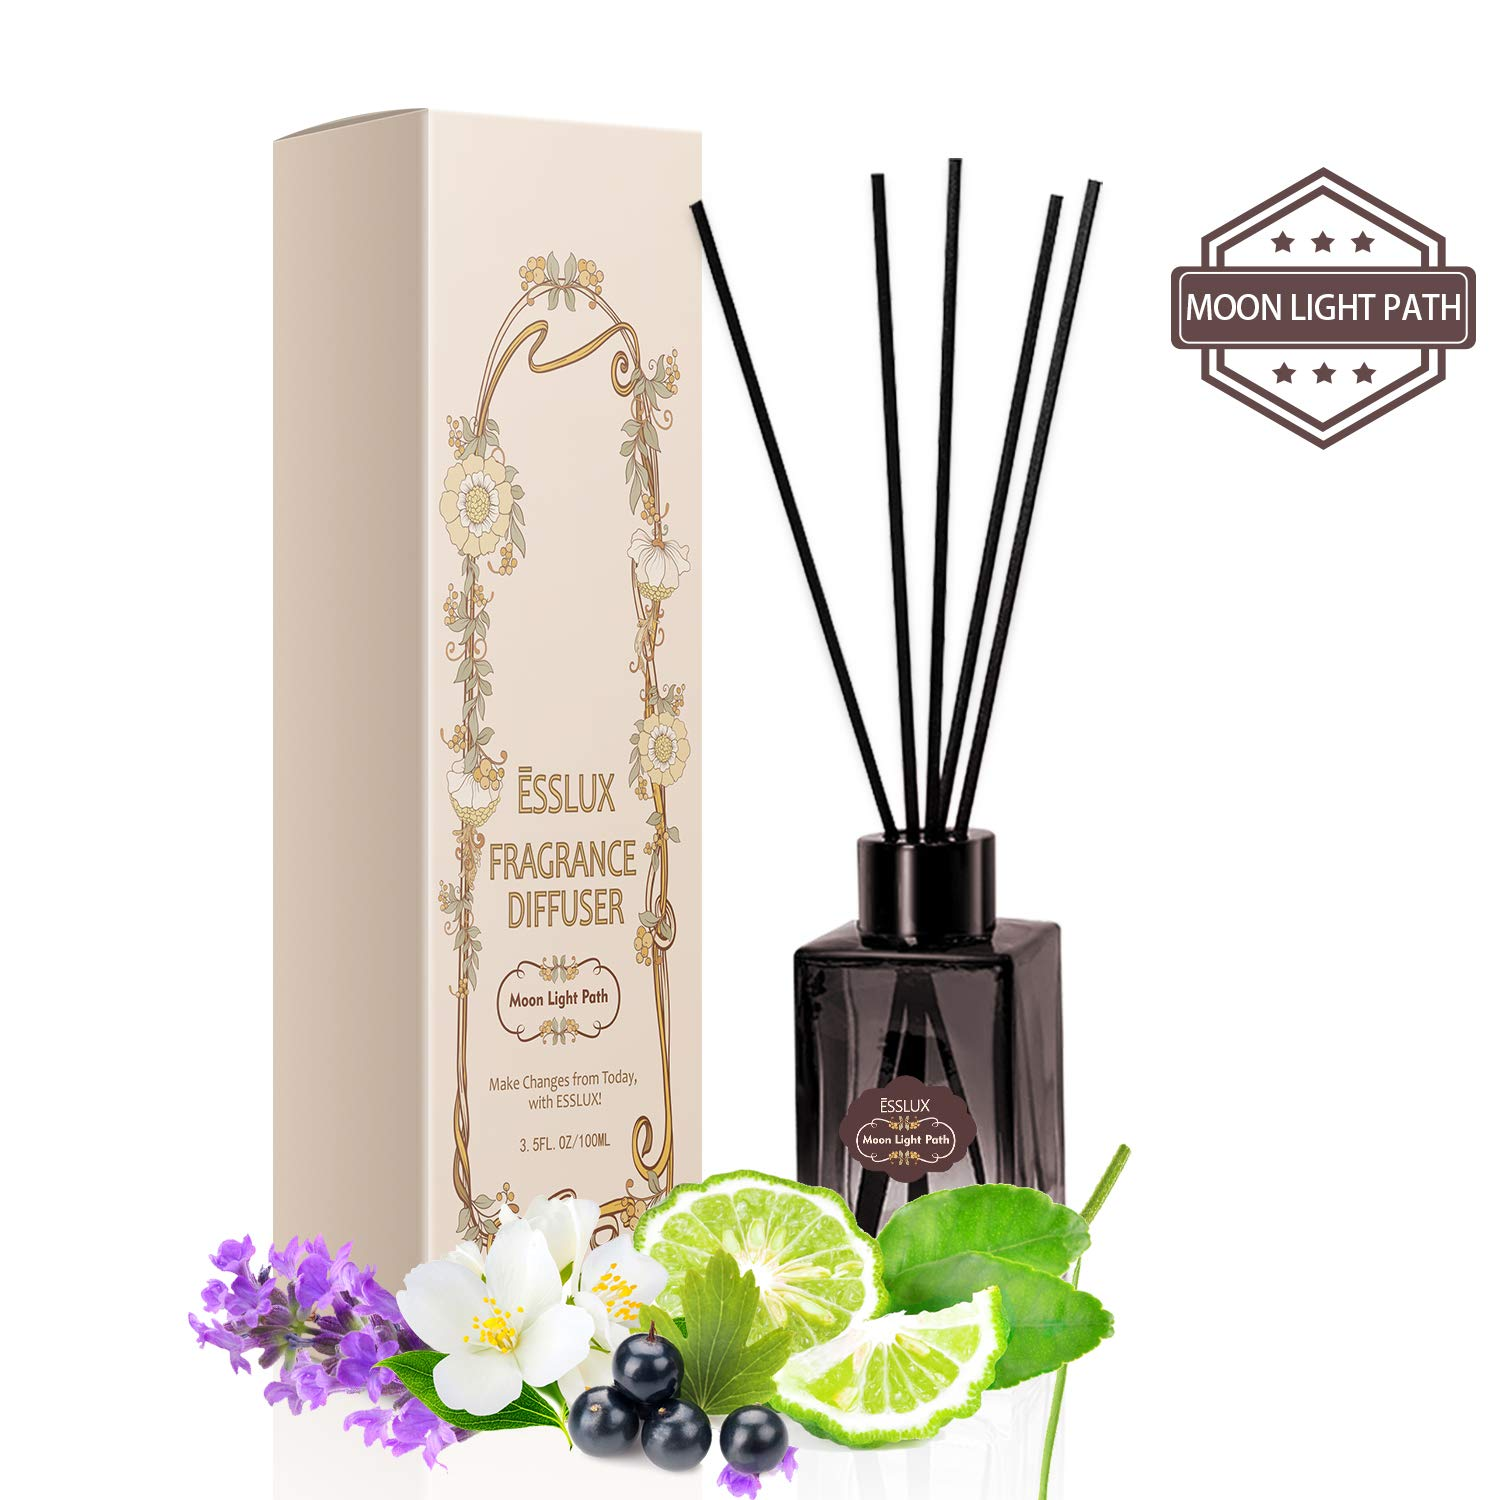 ESSLUX Room Diffuser, Oil Reed Diffuser Premium Quality for Home and Office, Air Freshener & Home Decor & Ideal Gift-Moon Light Path by ESSLUX